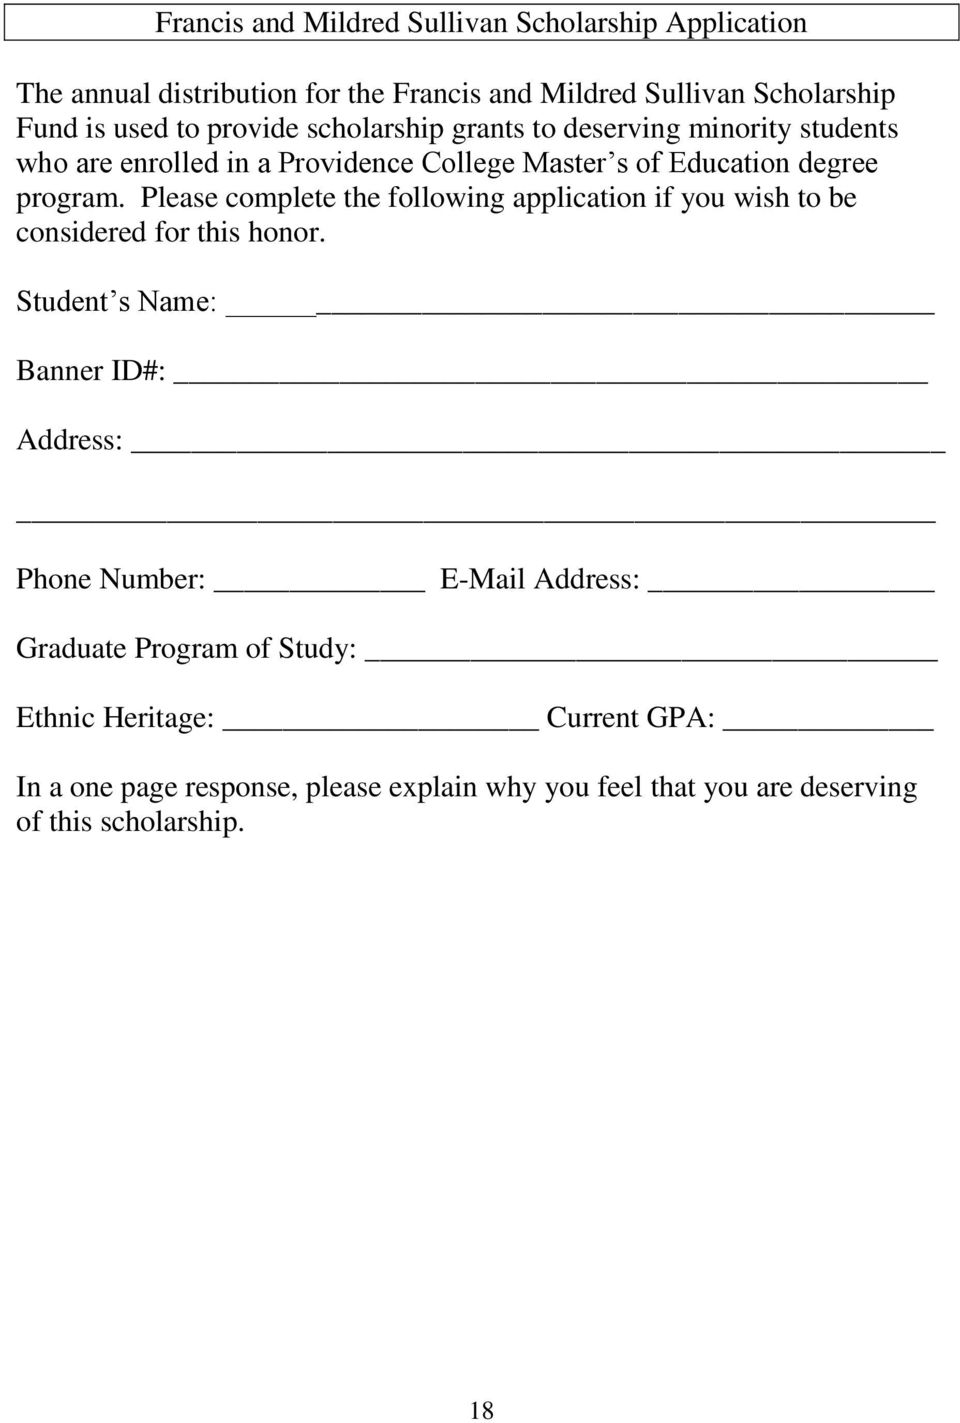 Please complete the following application if you wish to be considered for this honor.